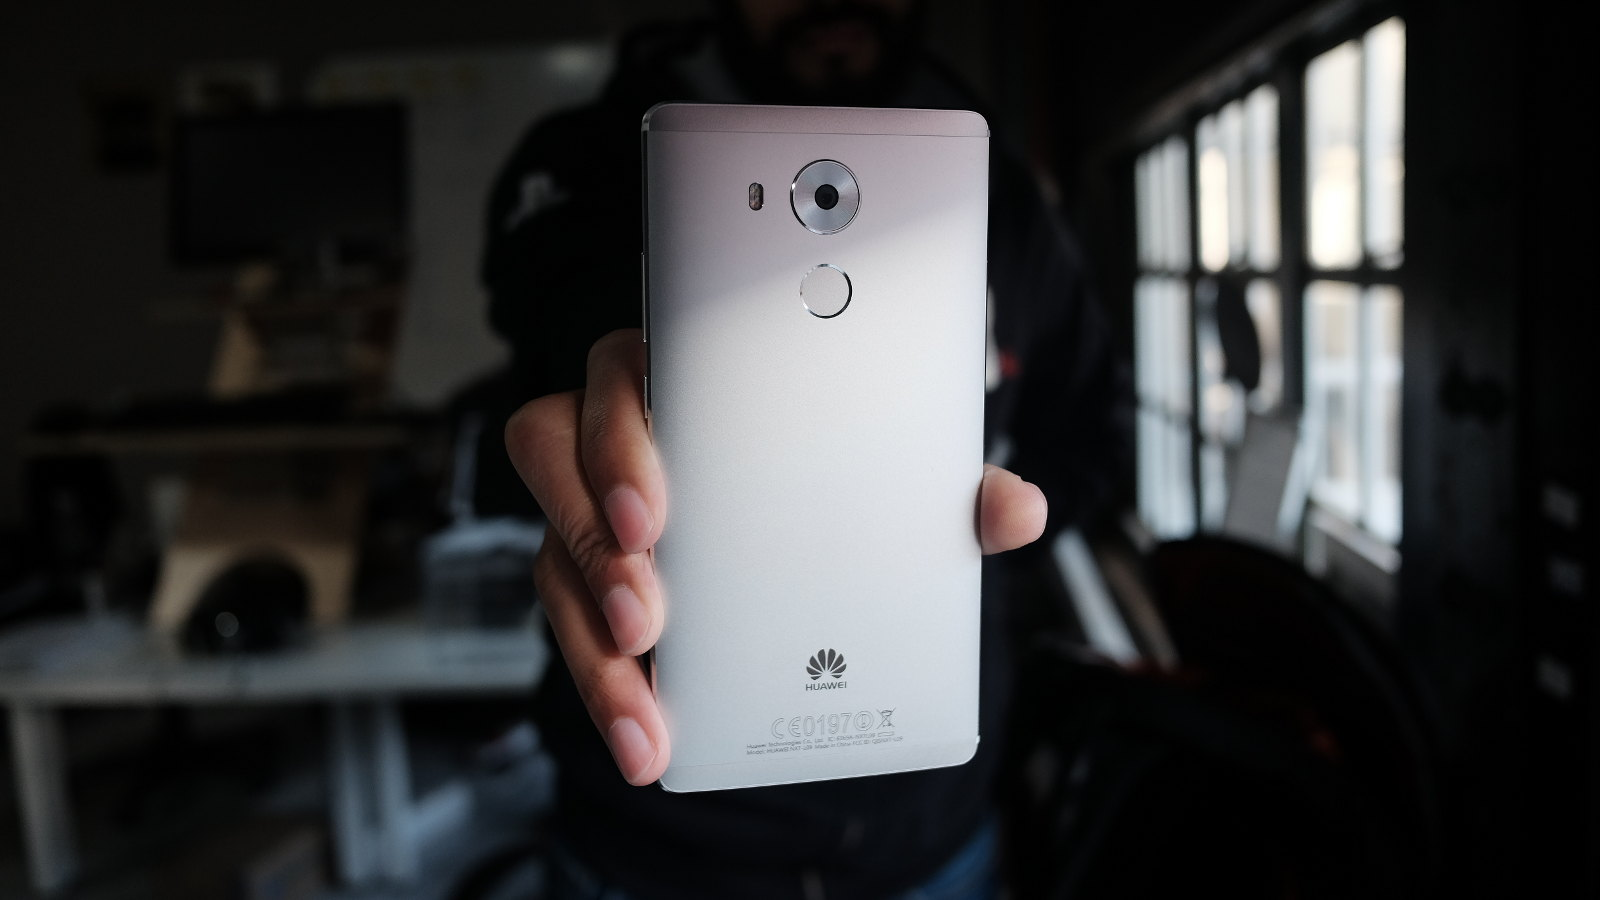 huawei mate 8 back featured